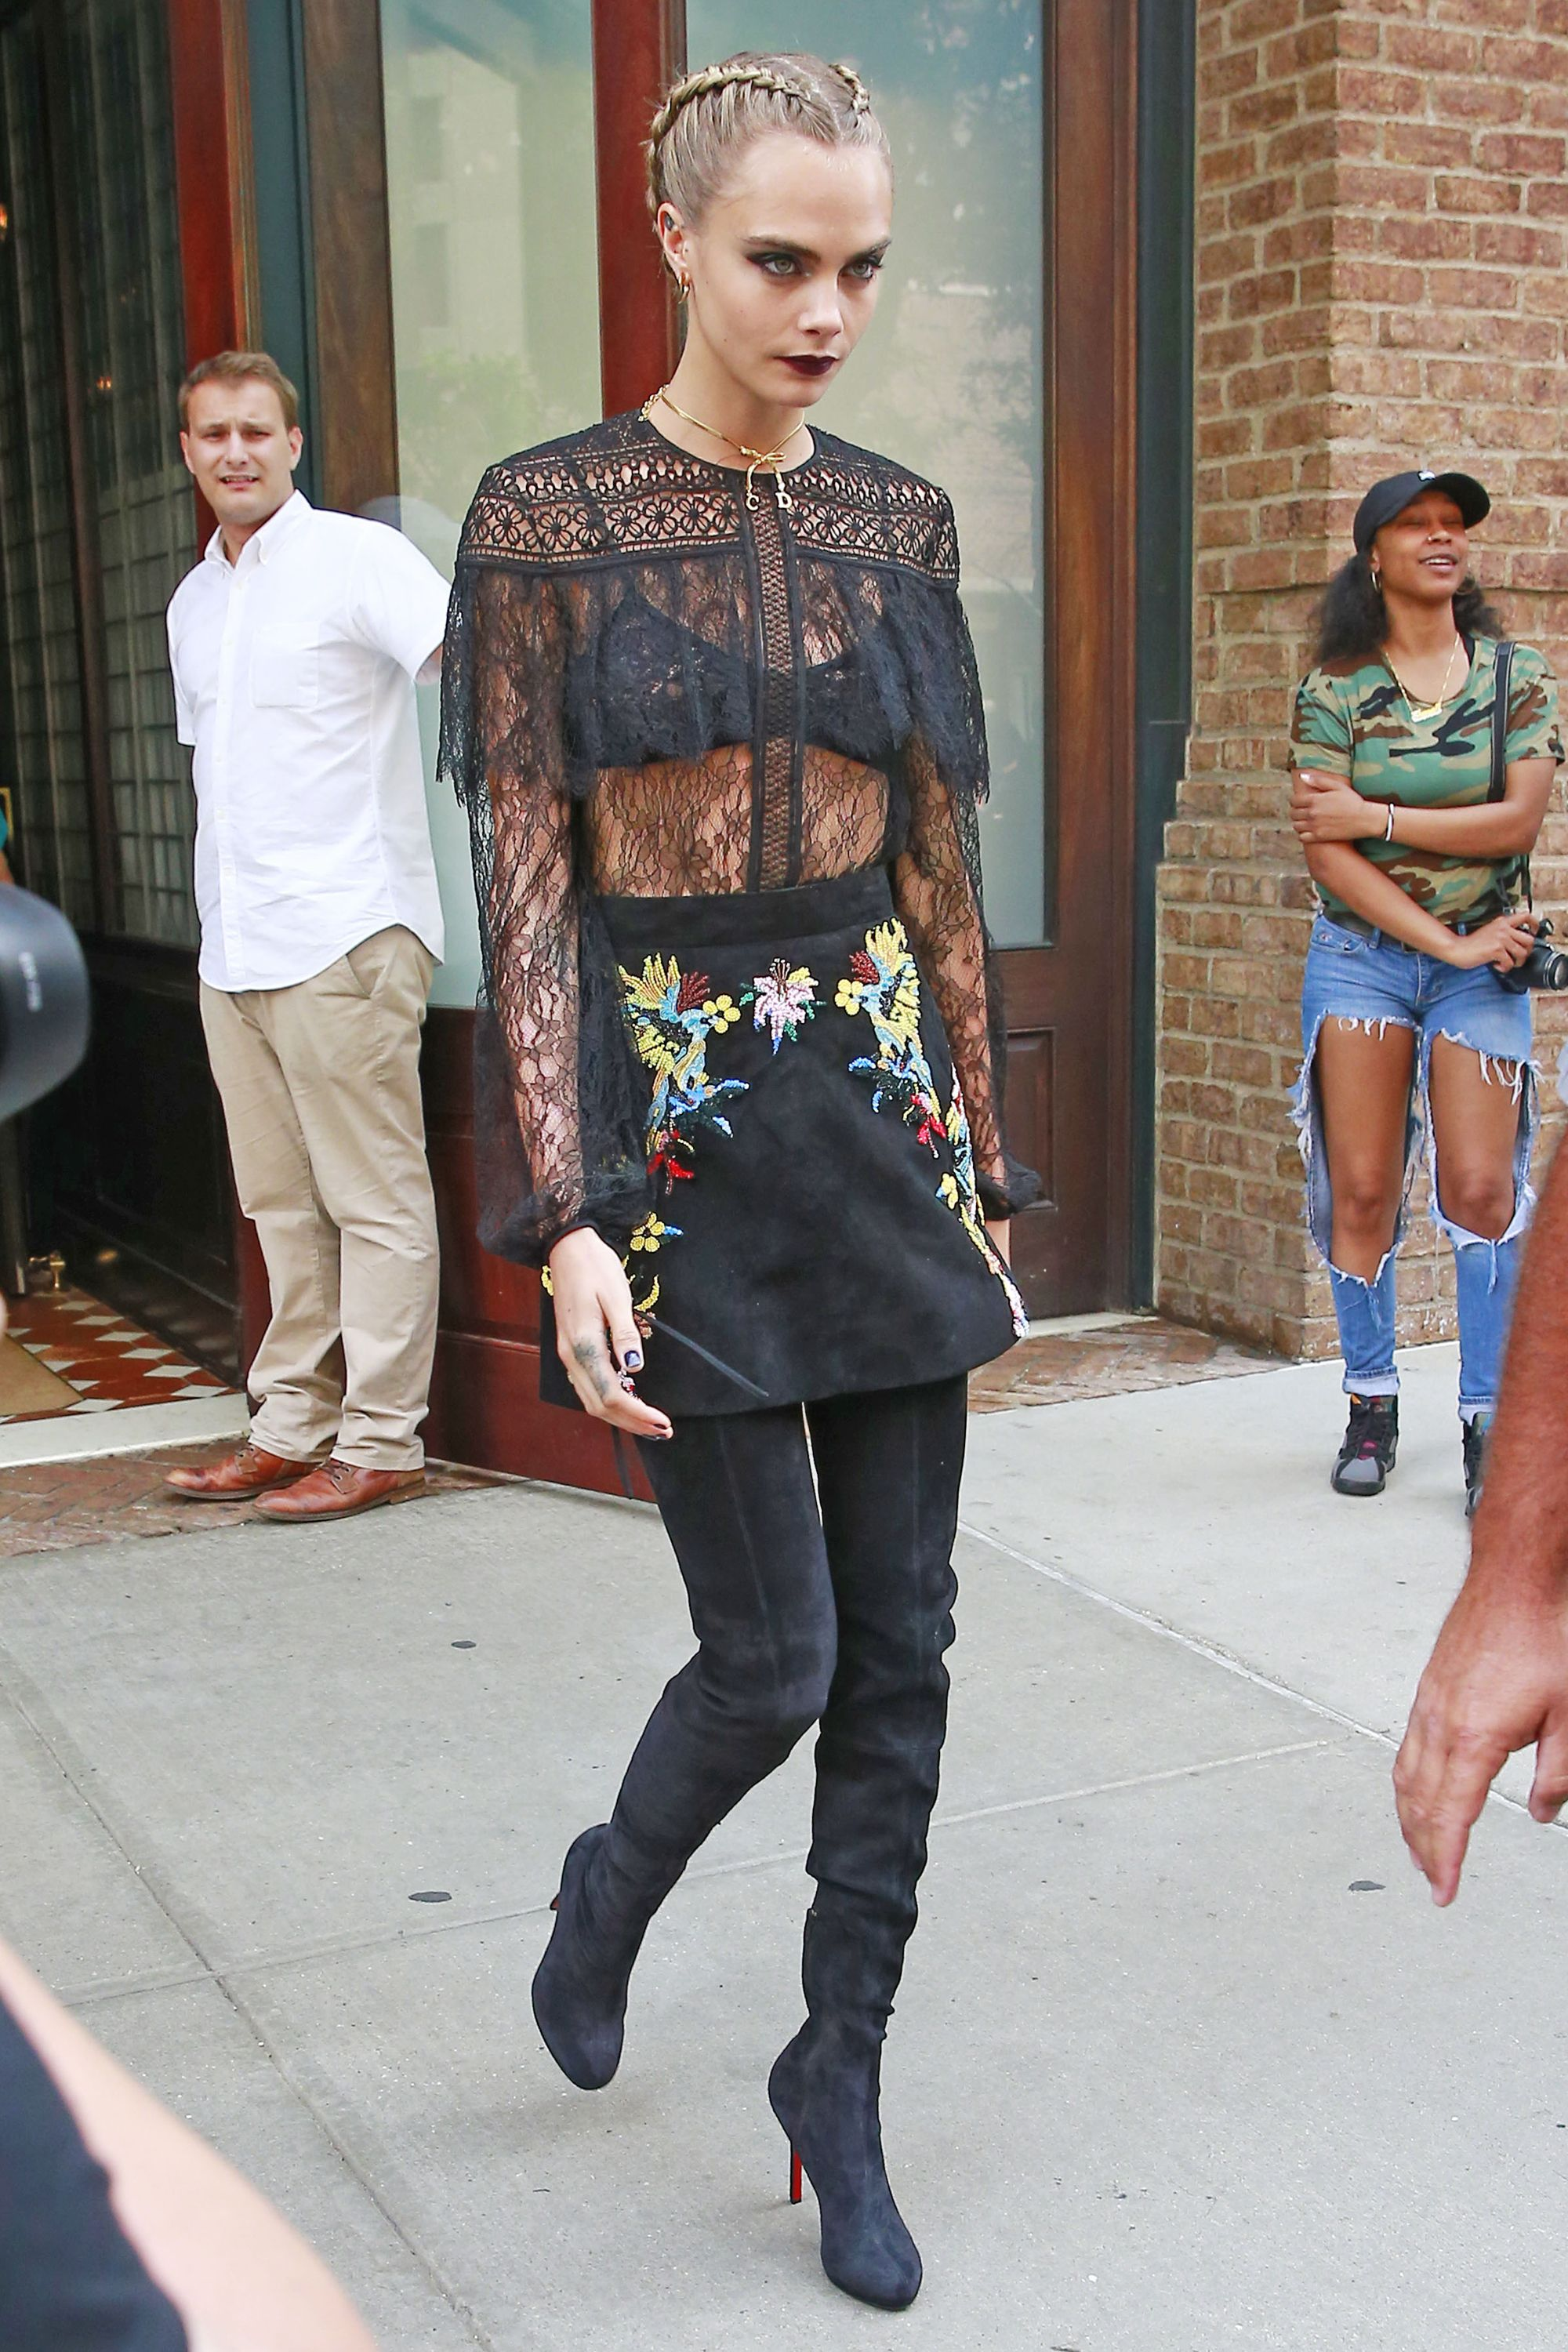 Cara delevingne leaves her hotel in nyc nudes (53 images)